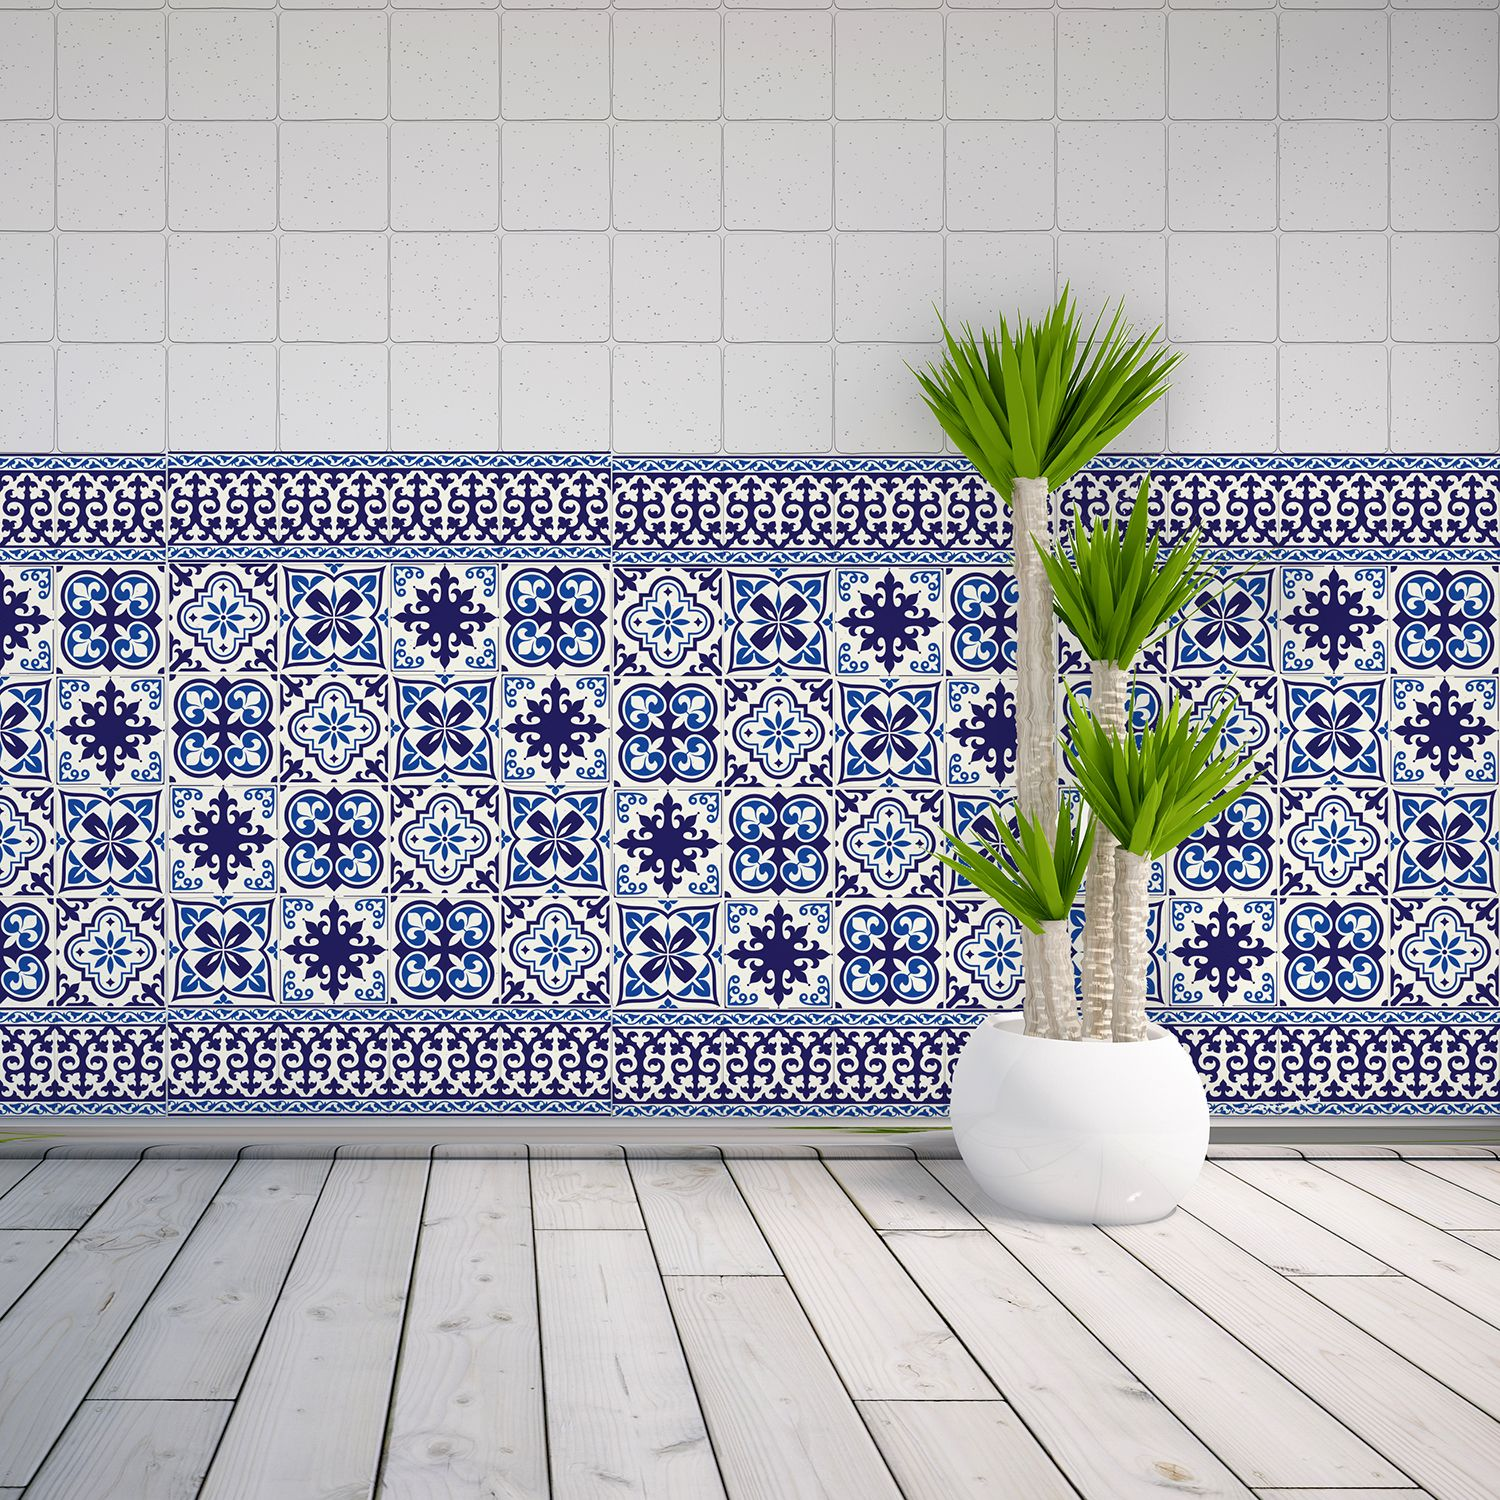 WT1010 - Granada Tiles Wall Stickers - 10 cm x 10 cm - 24 pcs.